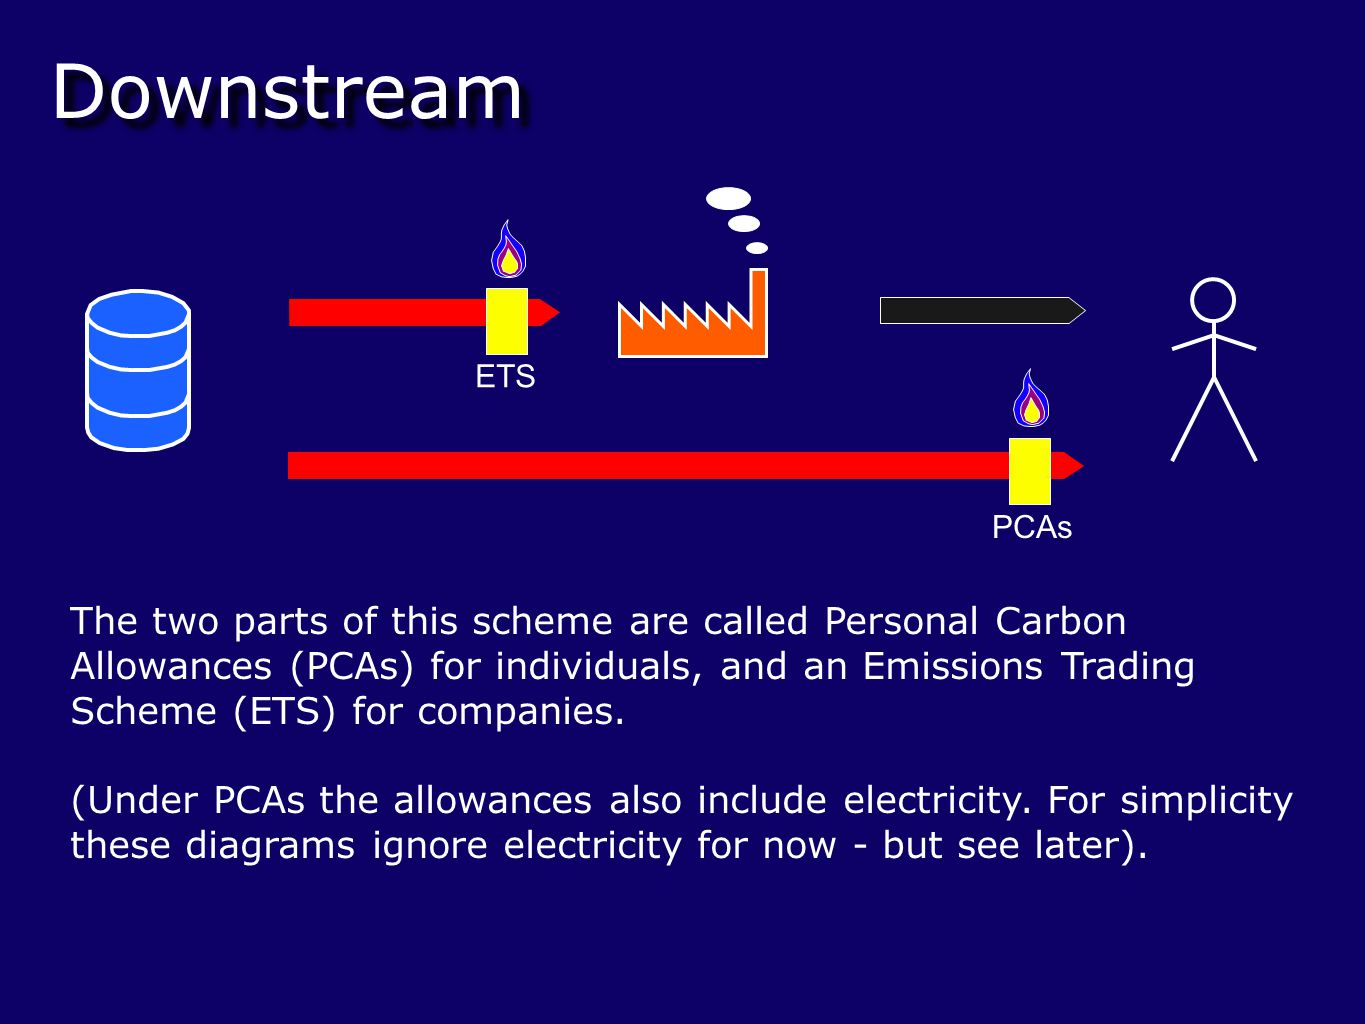 Downstream The two parts of this scheme are called Personal Carbon Allowances (PCAs) for individuals, and an Emissions Trading Scheme (ETS) for companies.